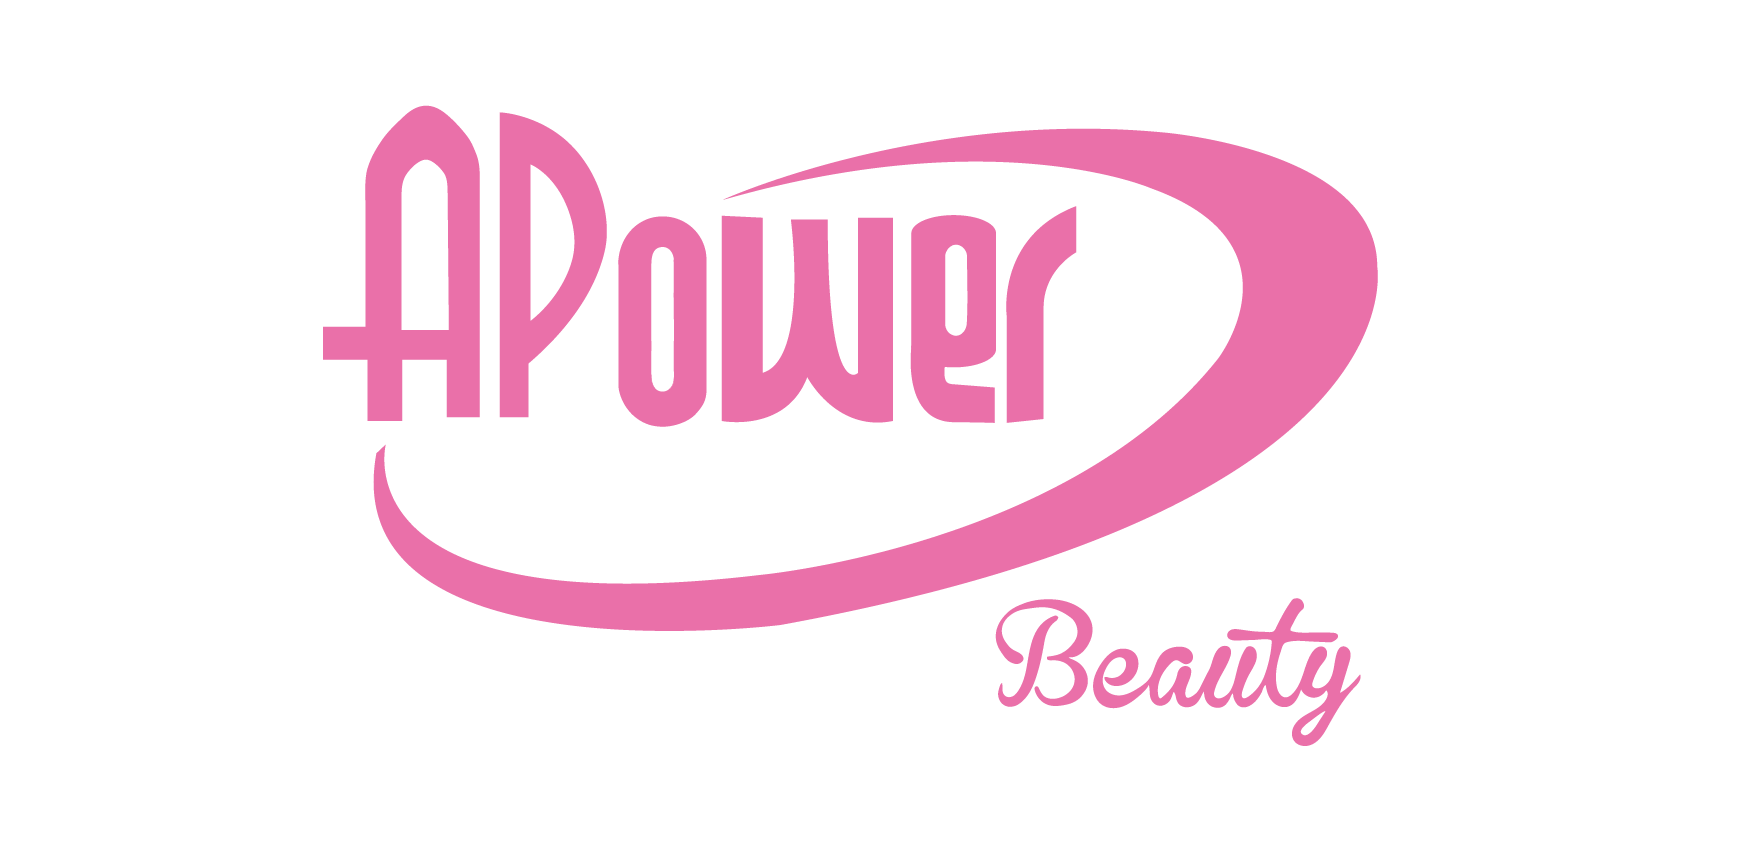 APower beauty